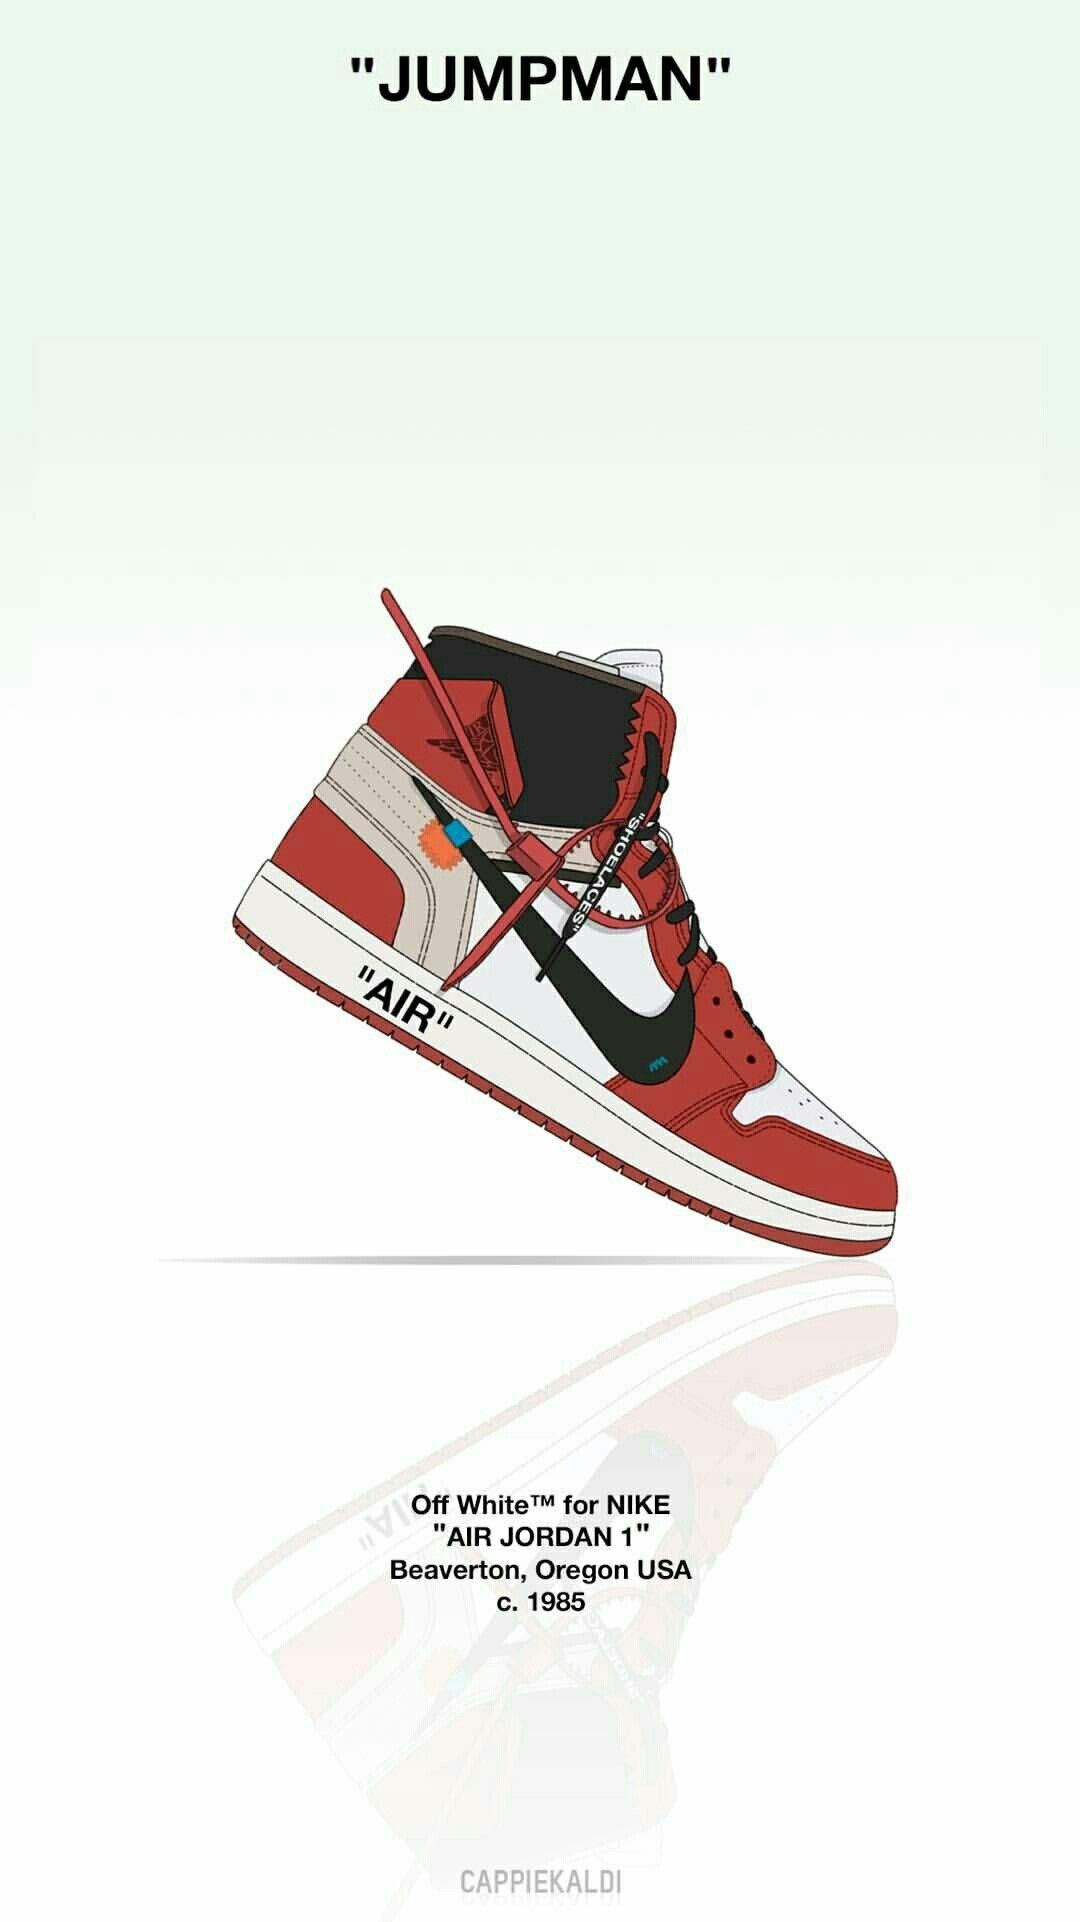 Jordan Off White Wallpaper Sneakers Wallpaper Shoes Wallpaper Sneakers Illustration